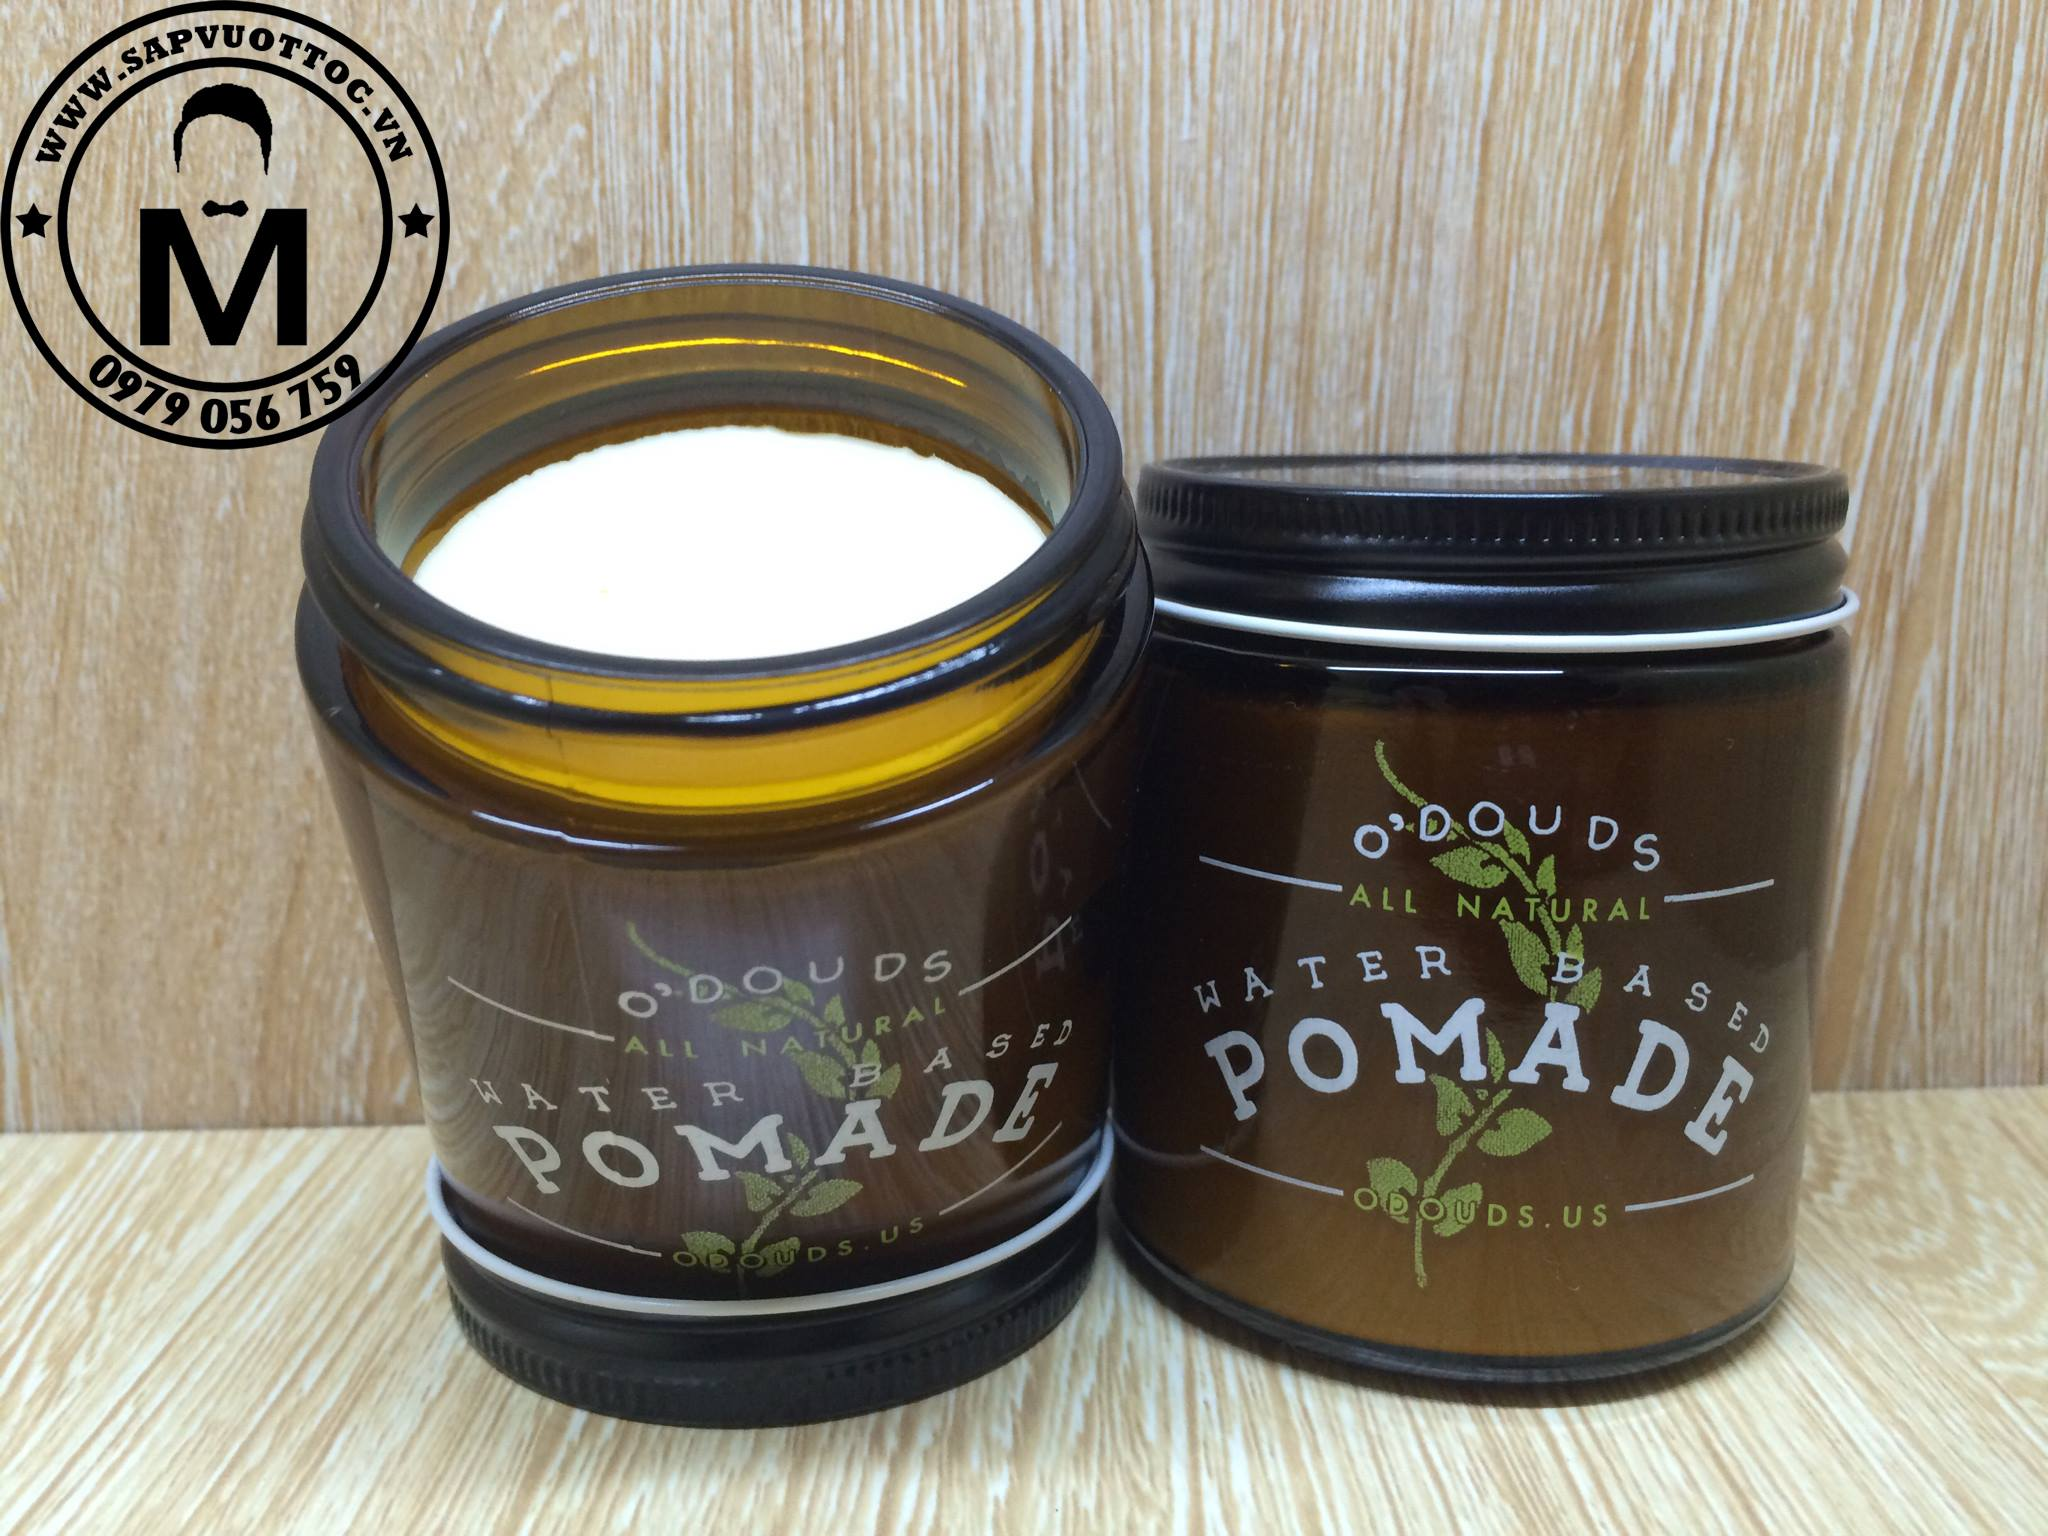 O'douds Water Based Pomade 1